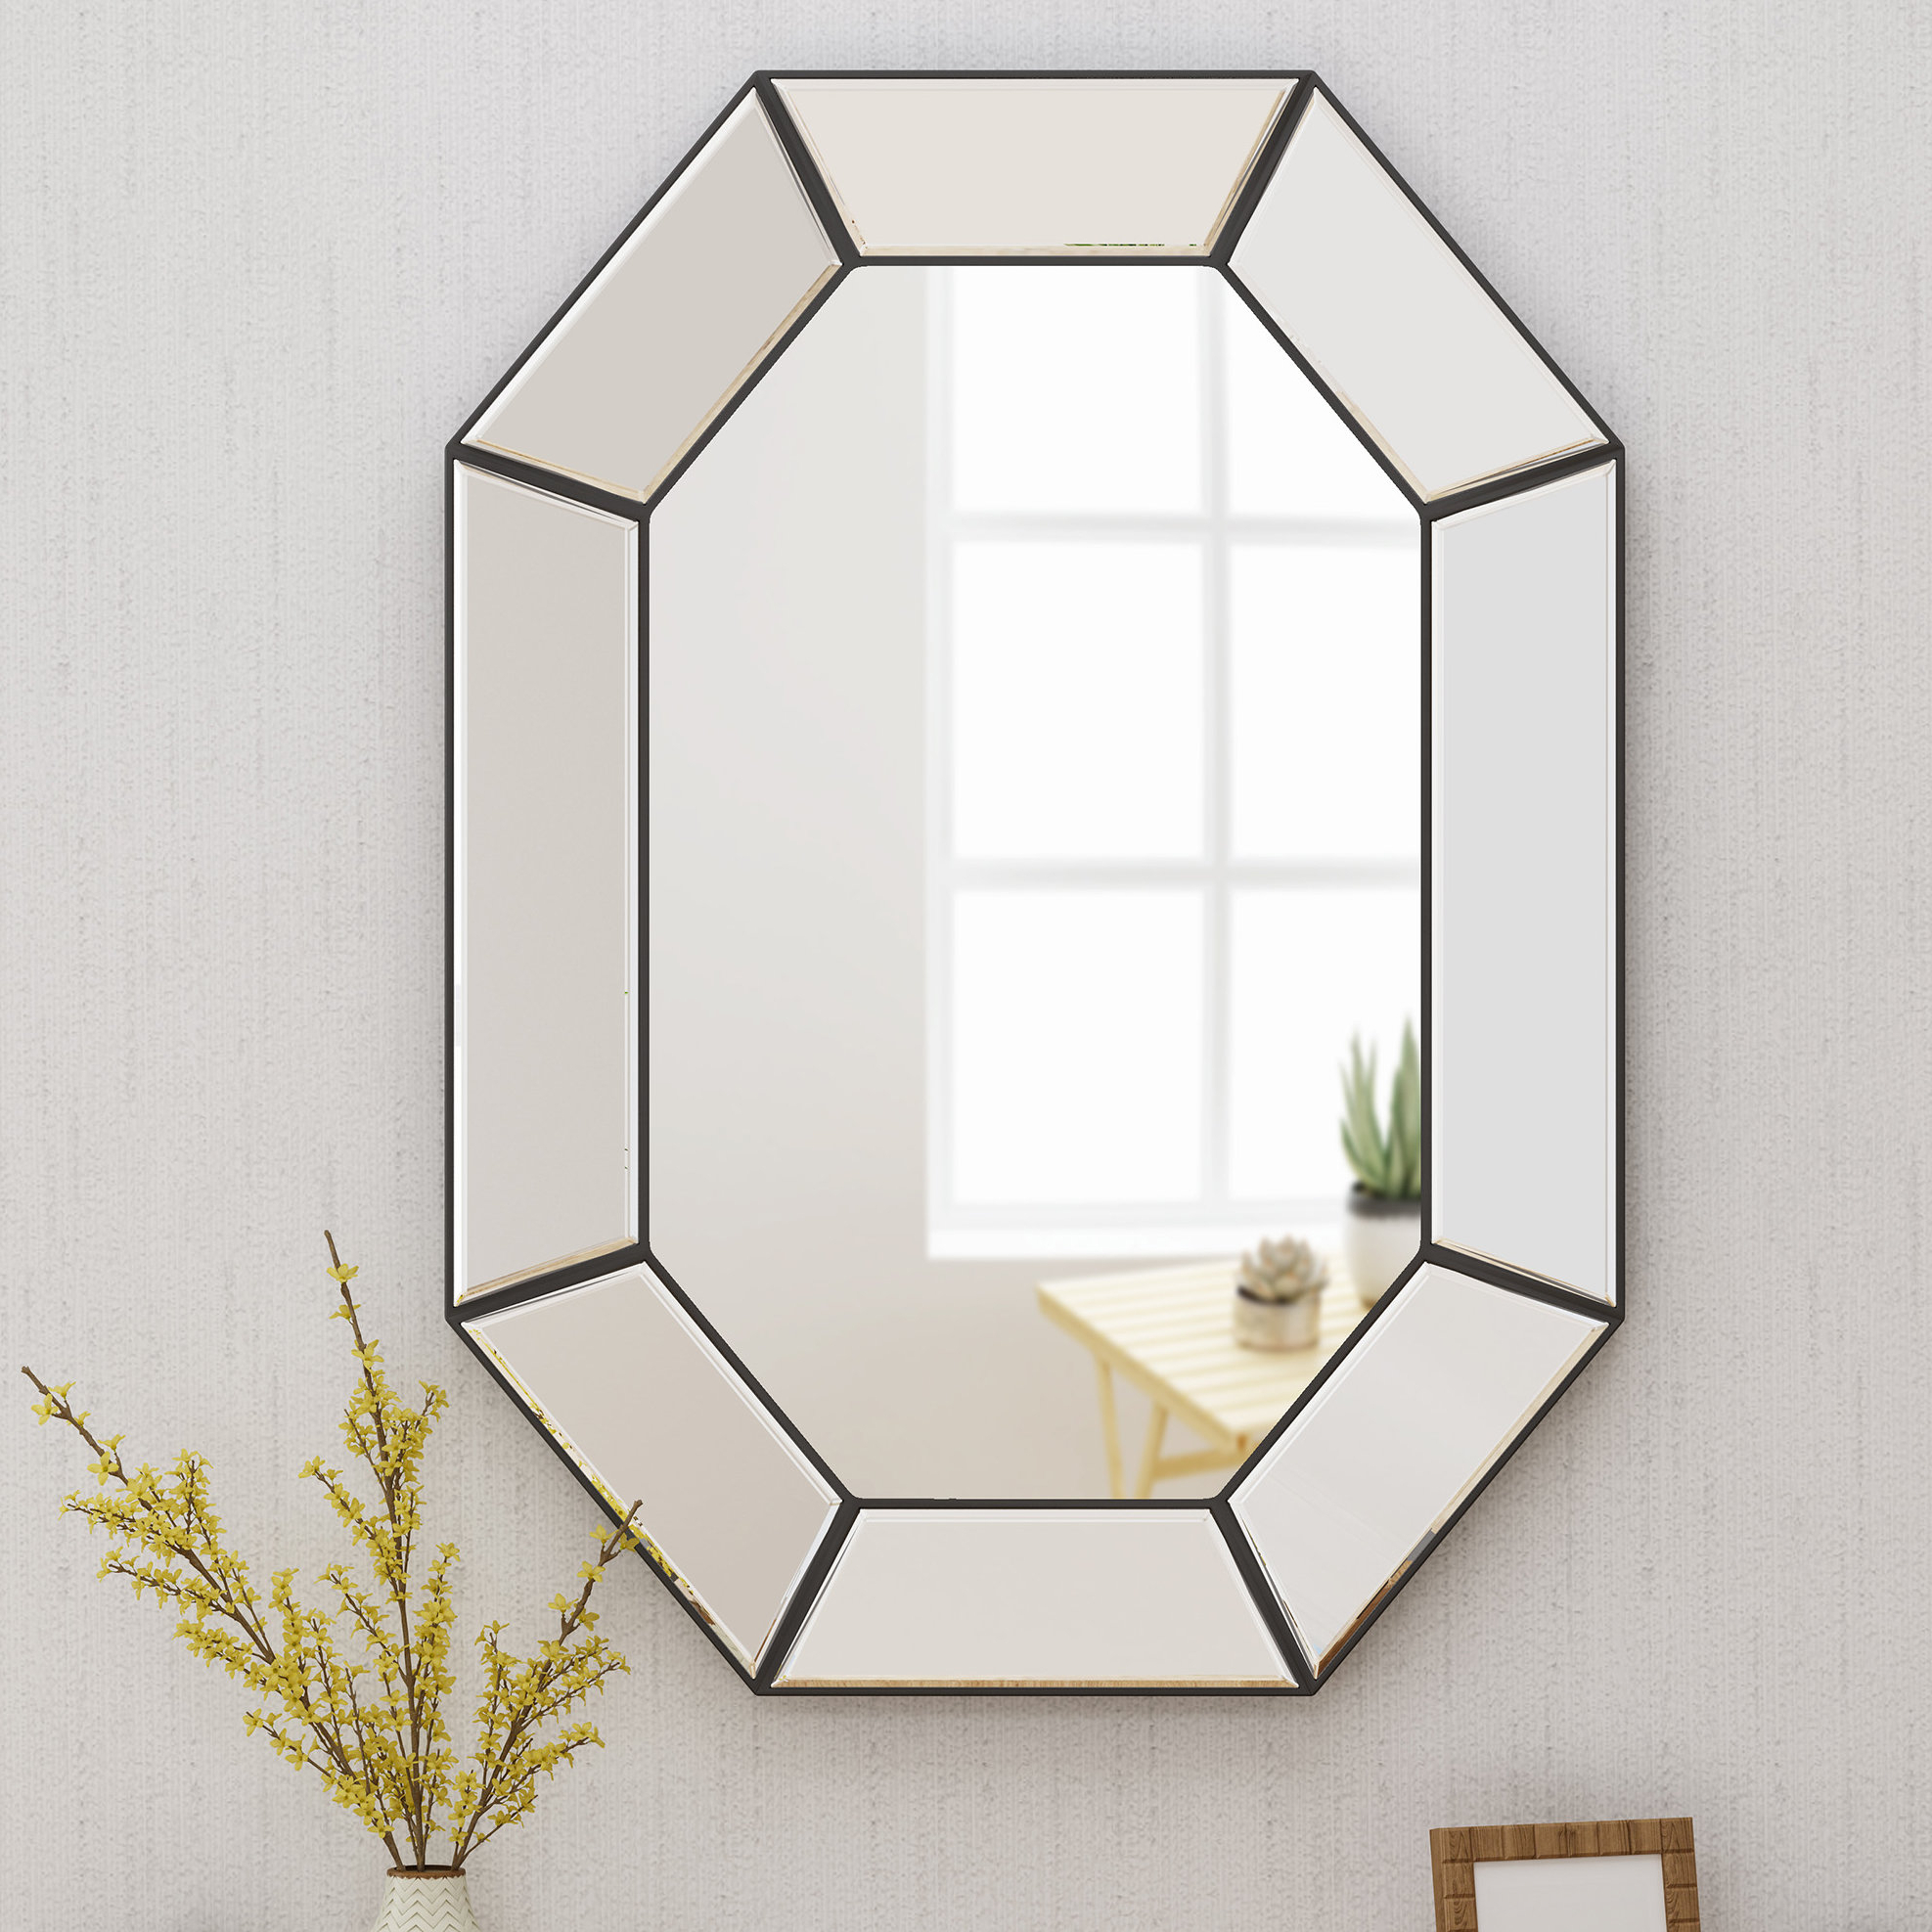 2019 Haverstraw Glam Accent Mirror Intended For Gia Hexagon Accent Mirrors (View 8 of 20)